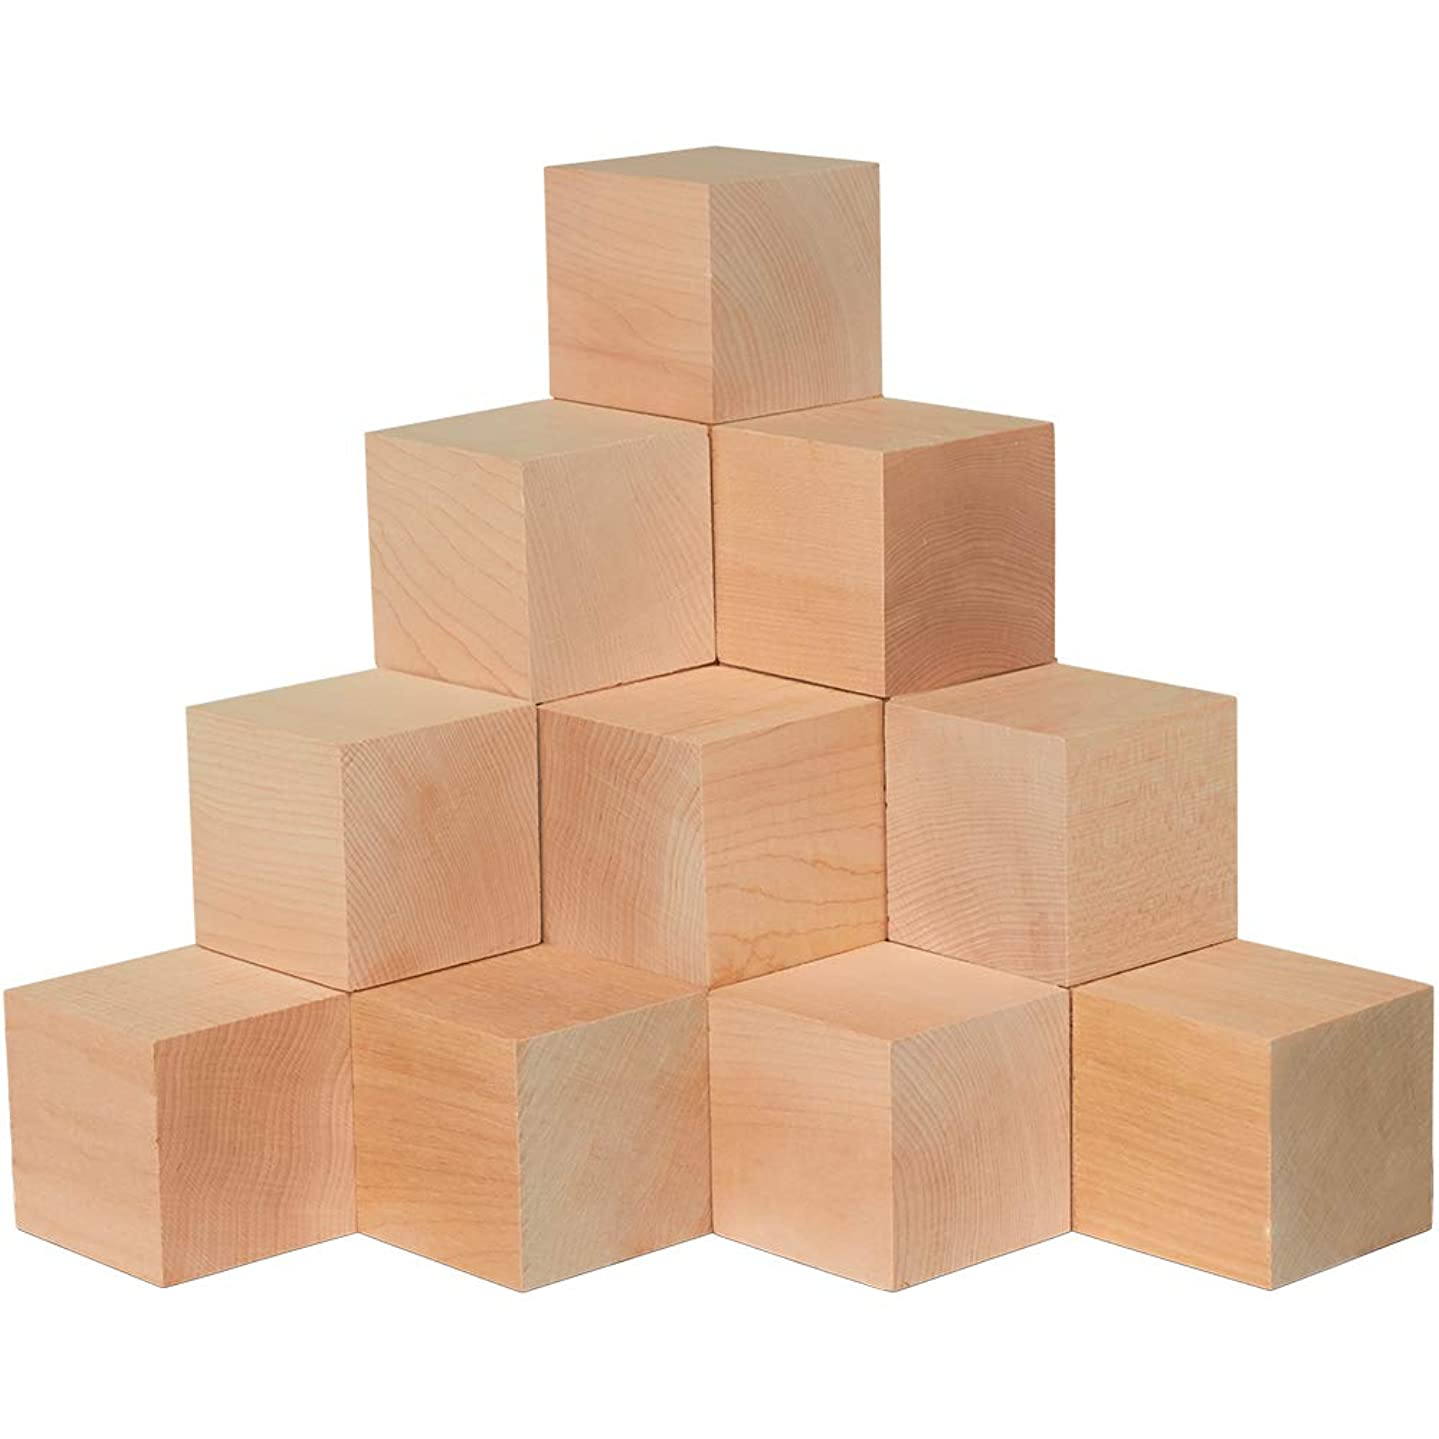 Wood Blocks, 2-1/2 Inch Cubes, 2 Pack   Unfinished Wooden Toy Craft Supply Kit for Kids & Adults, DIY Art Projects, ABC Toys   Woodpeckers Crafts